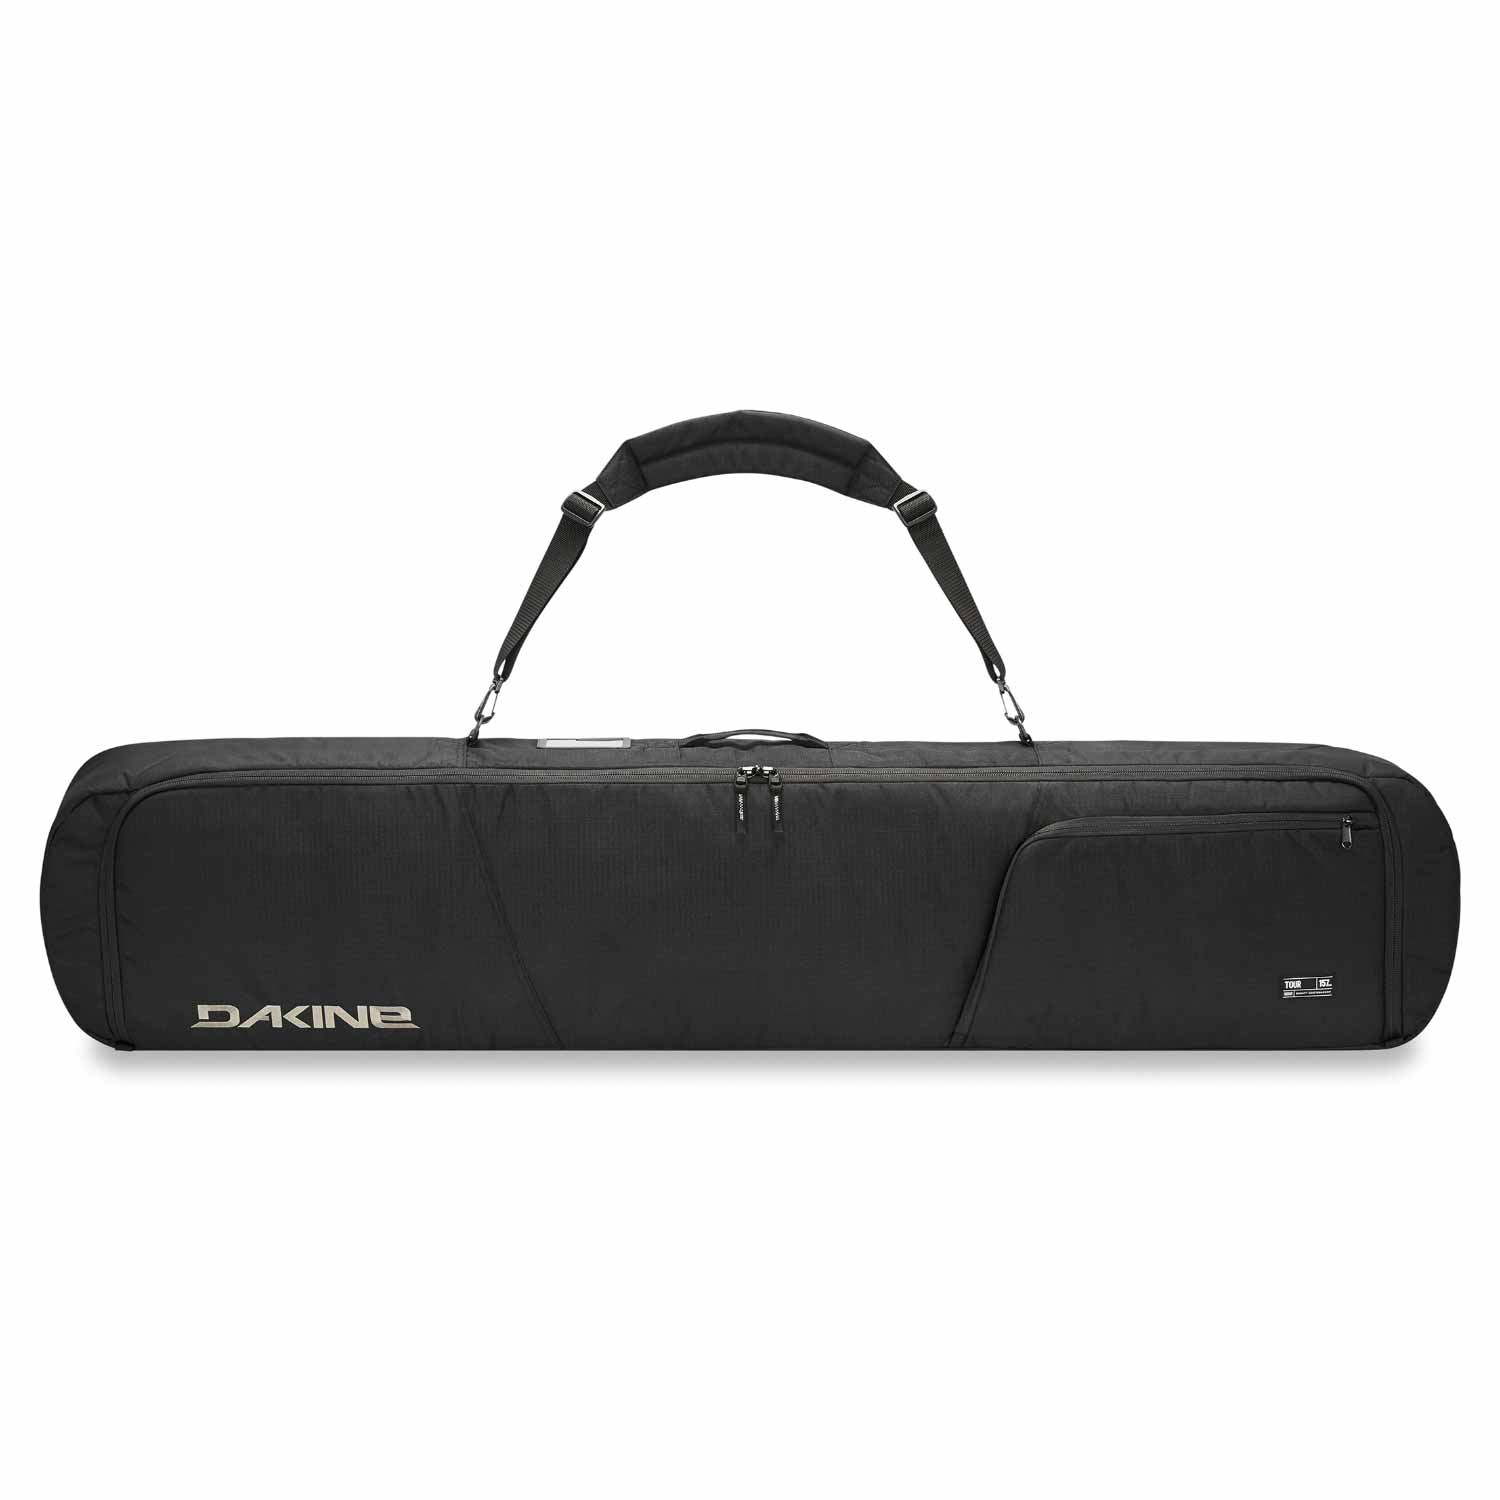 Dakine Tour Snowboard Bag Black 2020